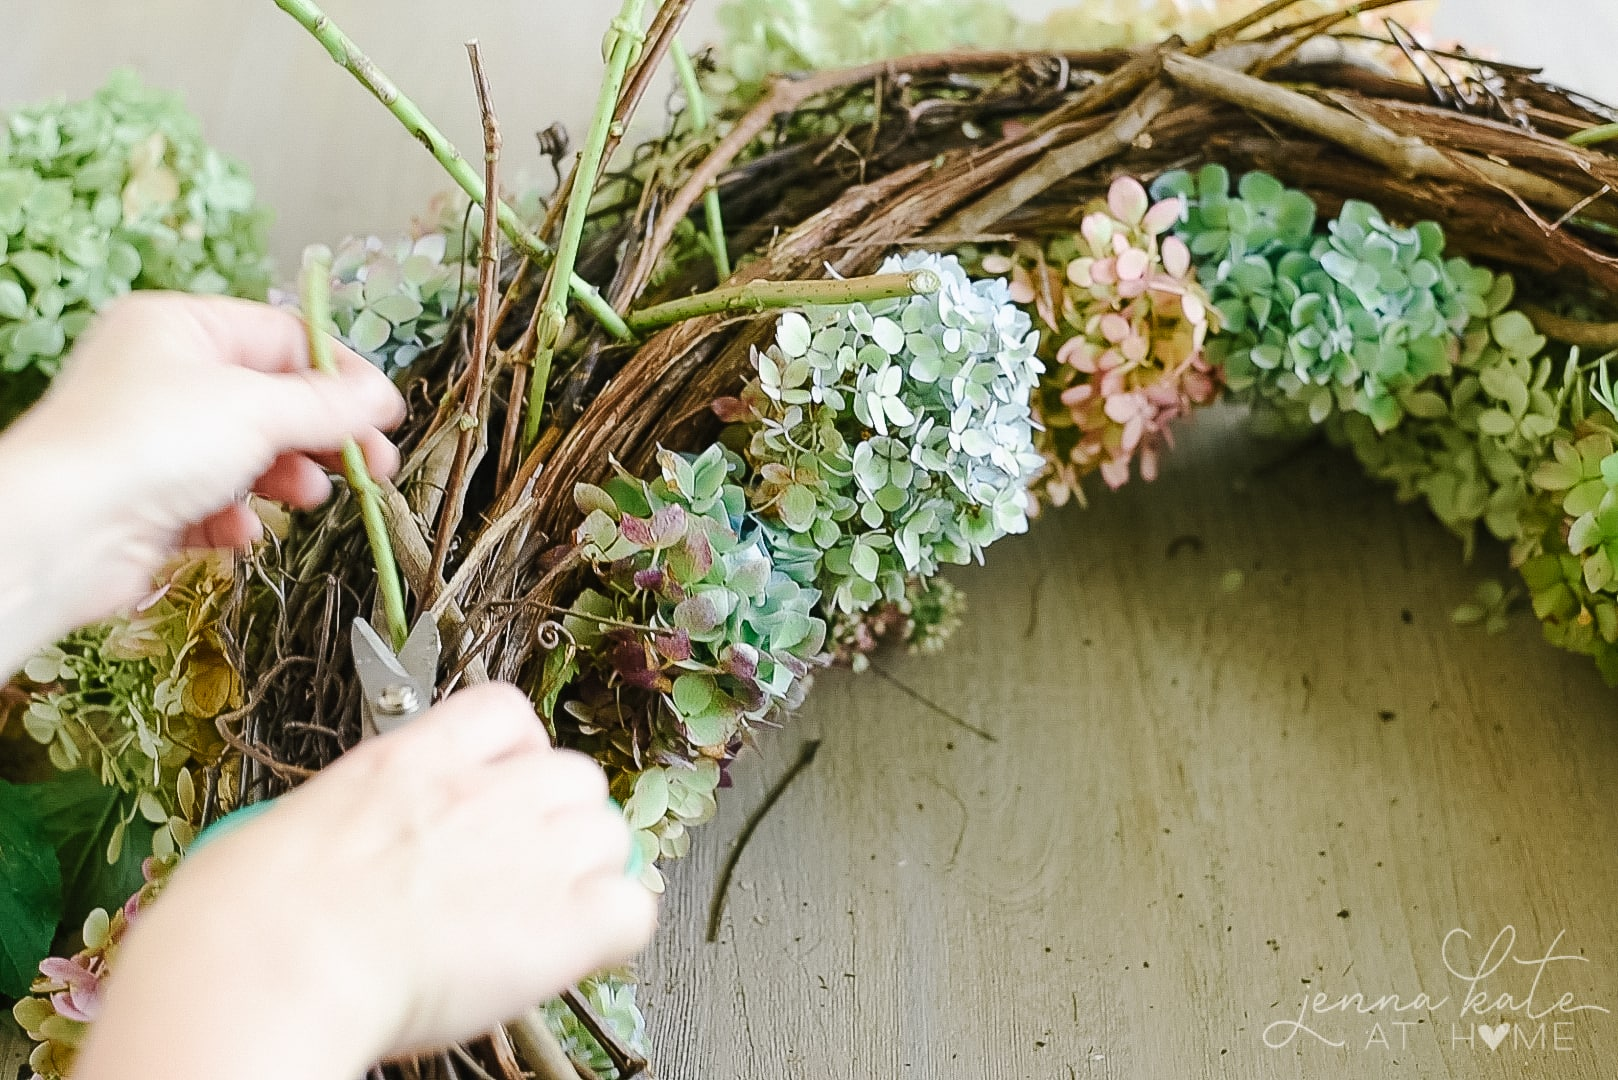 Cut the stems from the back of the wreath once it's full